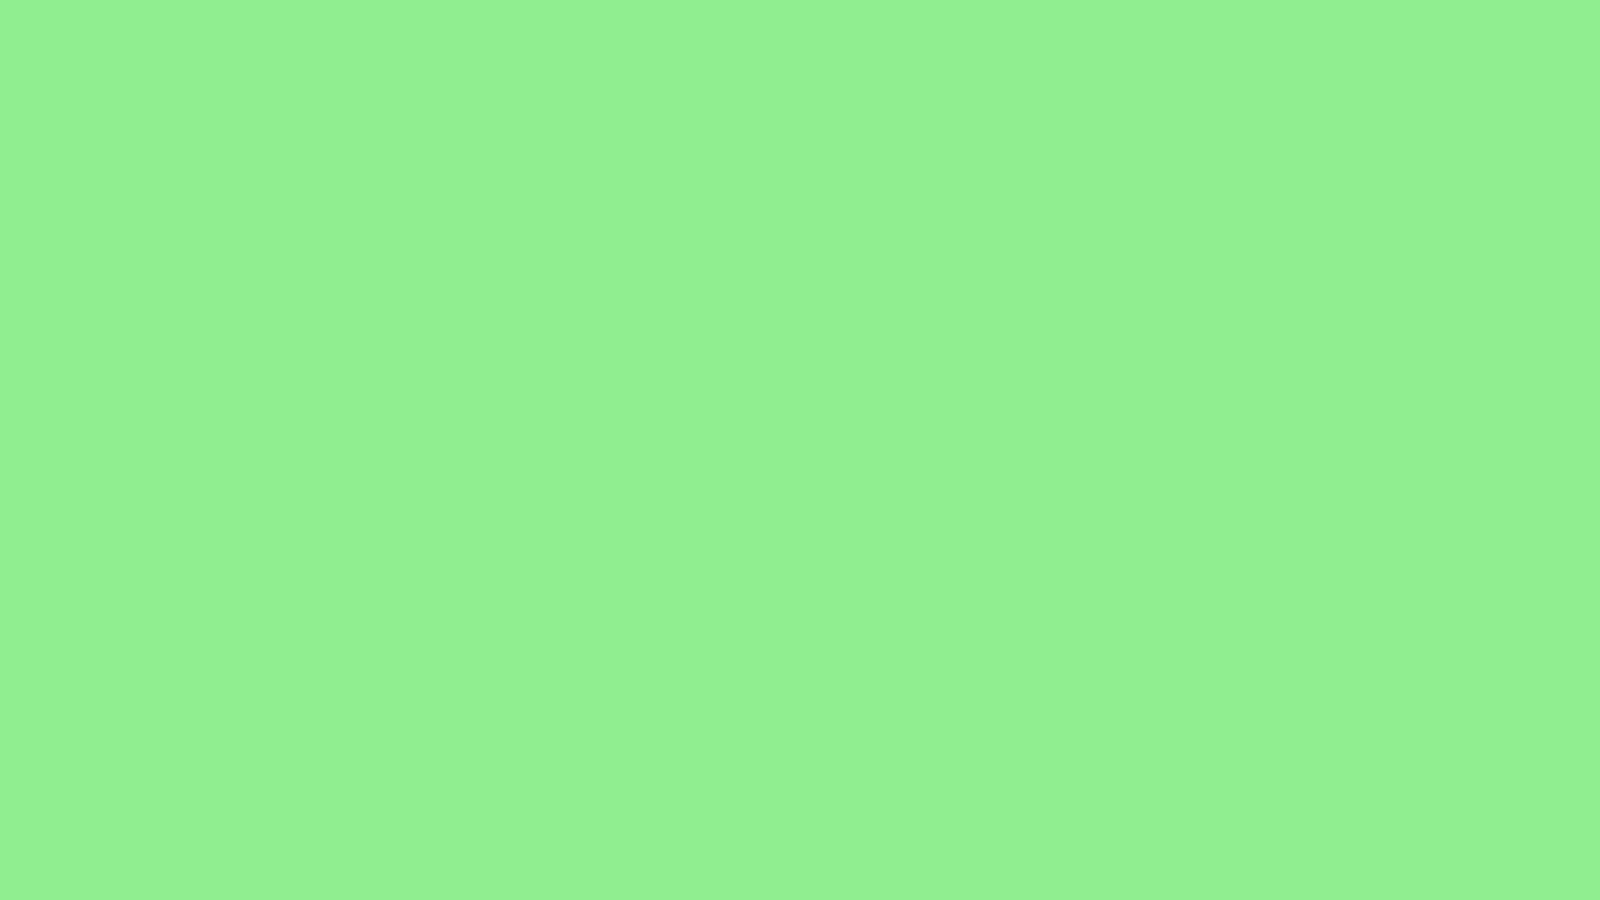 1600x900 resolution Light Green solid color background view and 1600x900